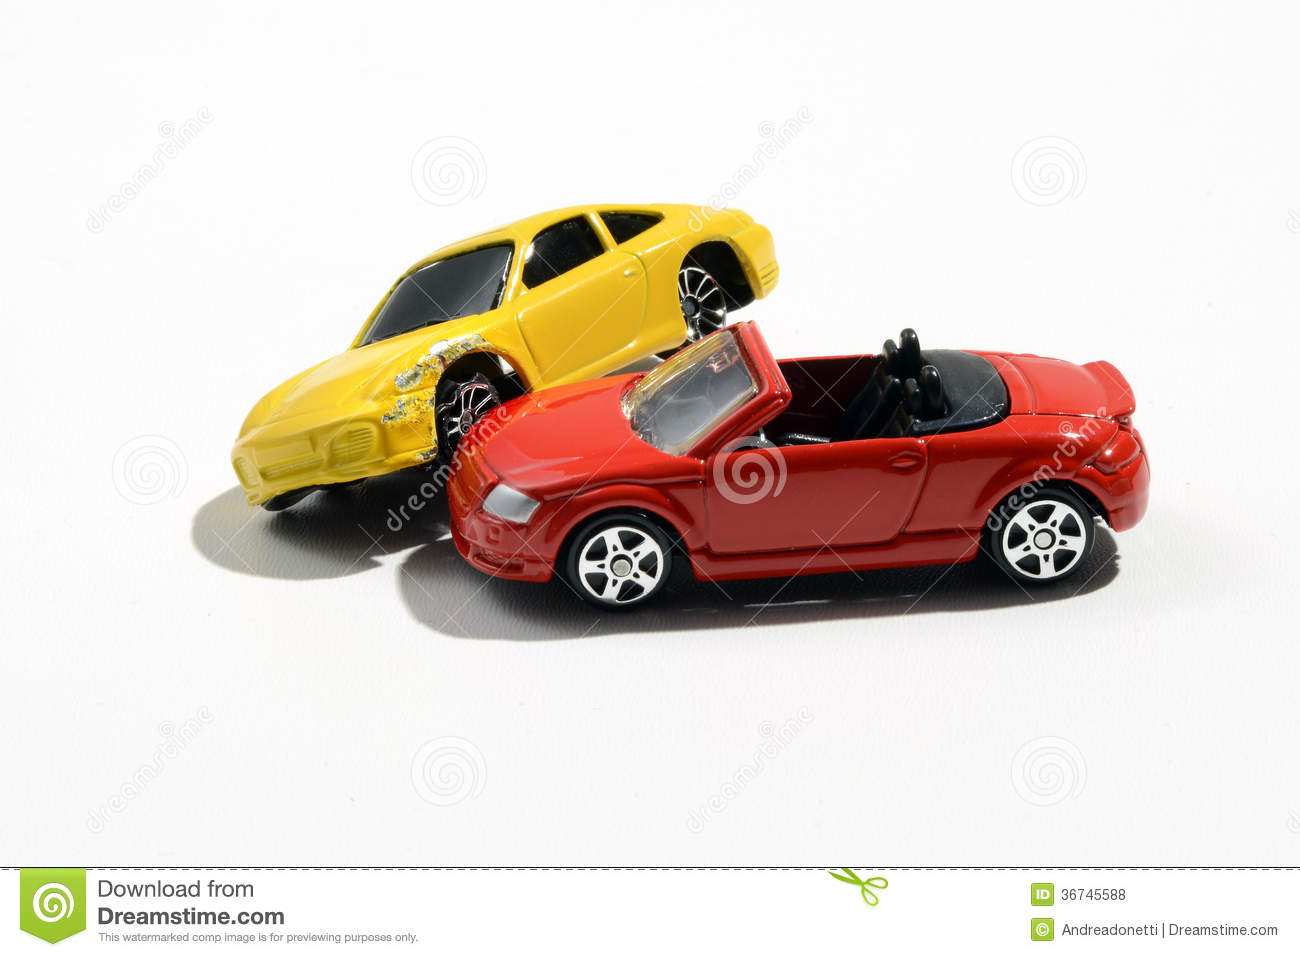 Toy Model Gallery : Two colourful metal toy model cars royalty free stock